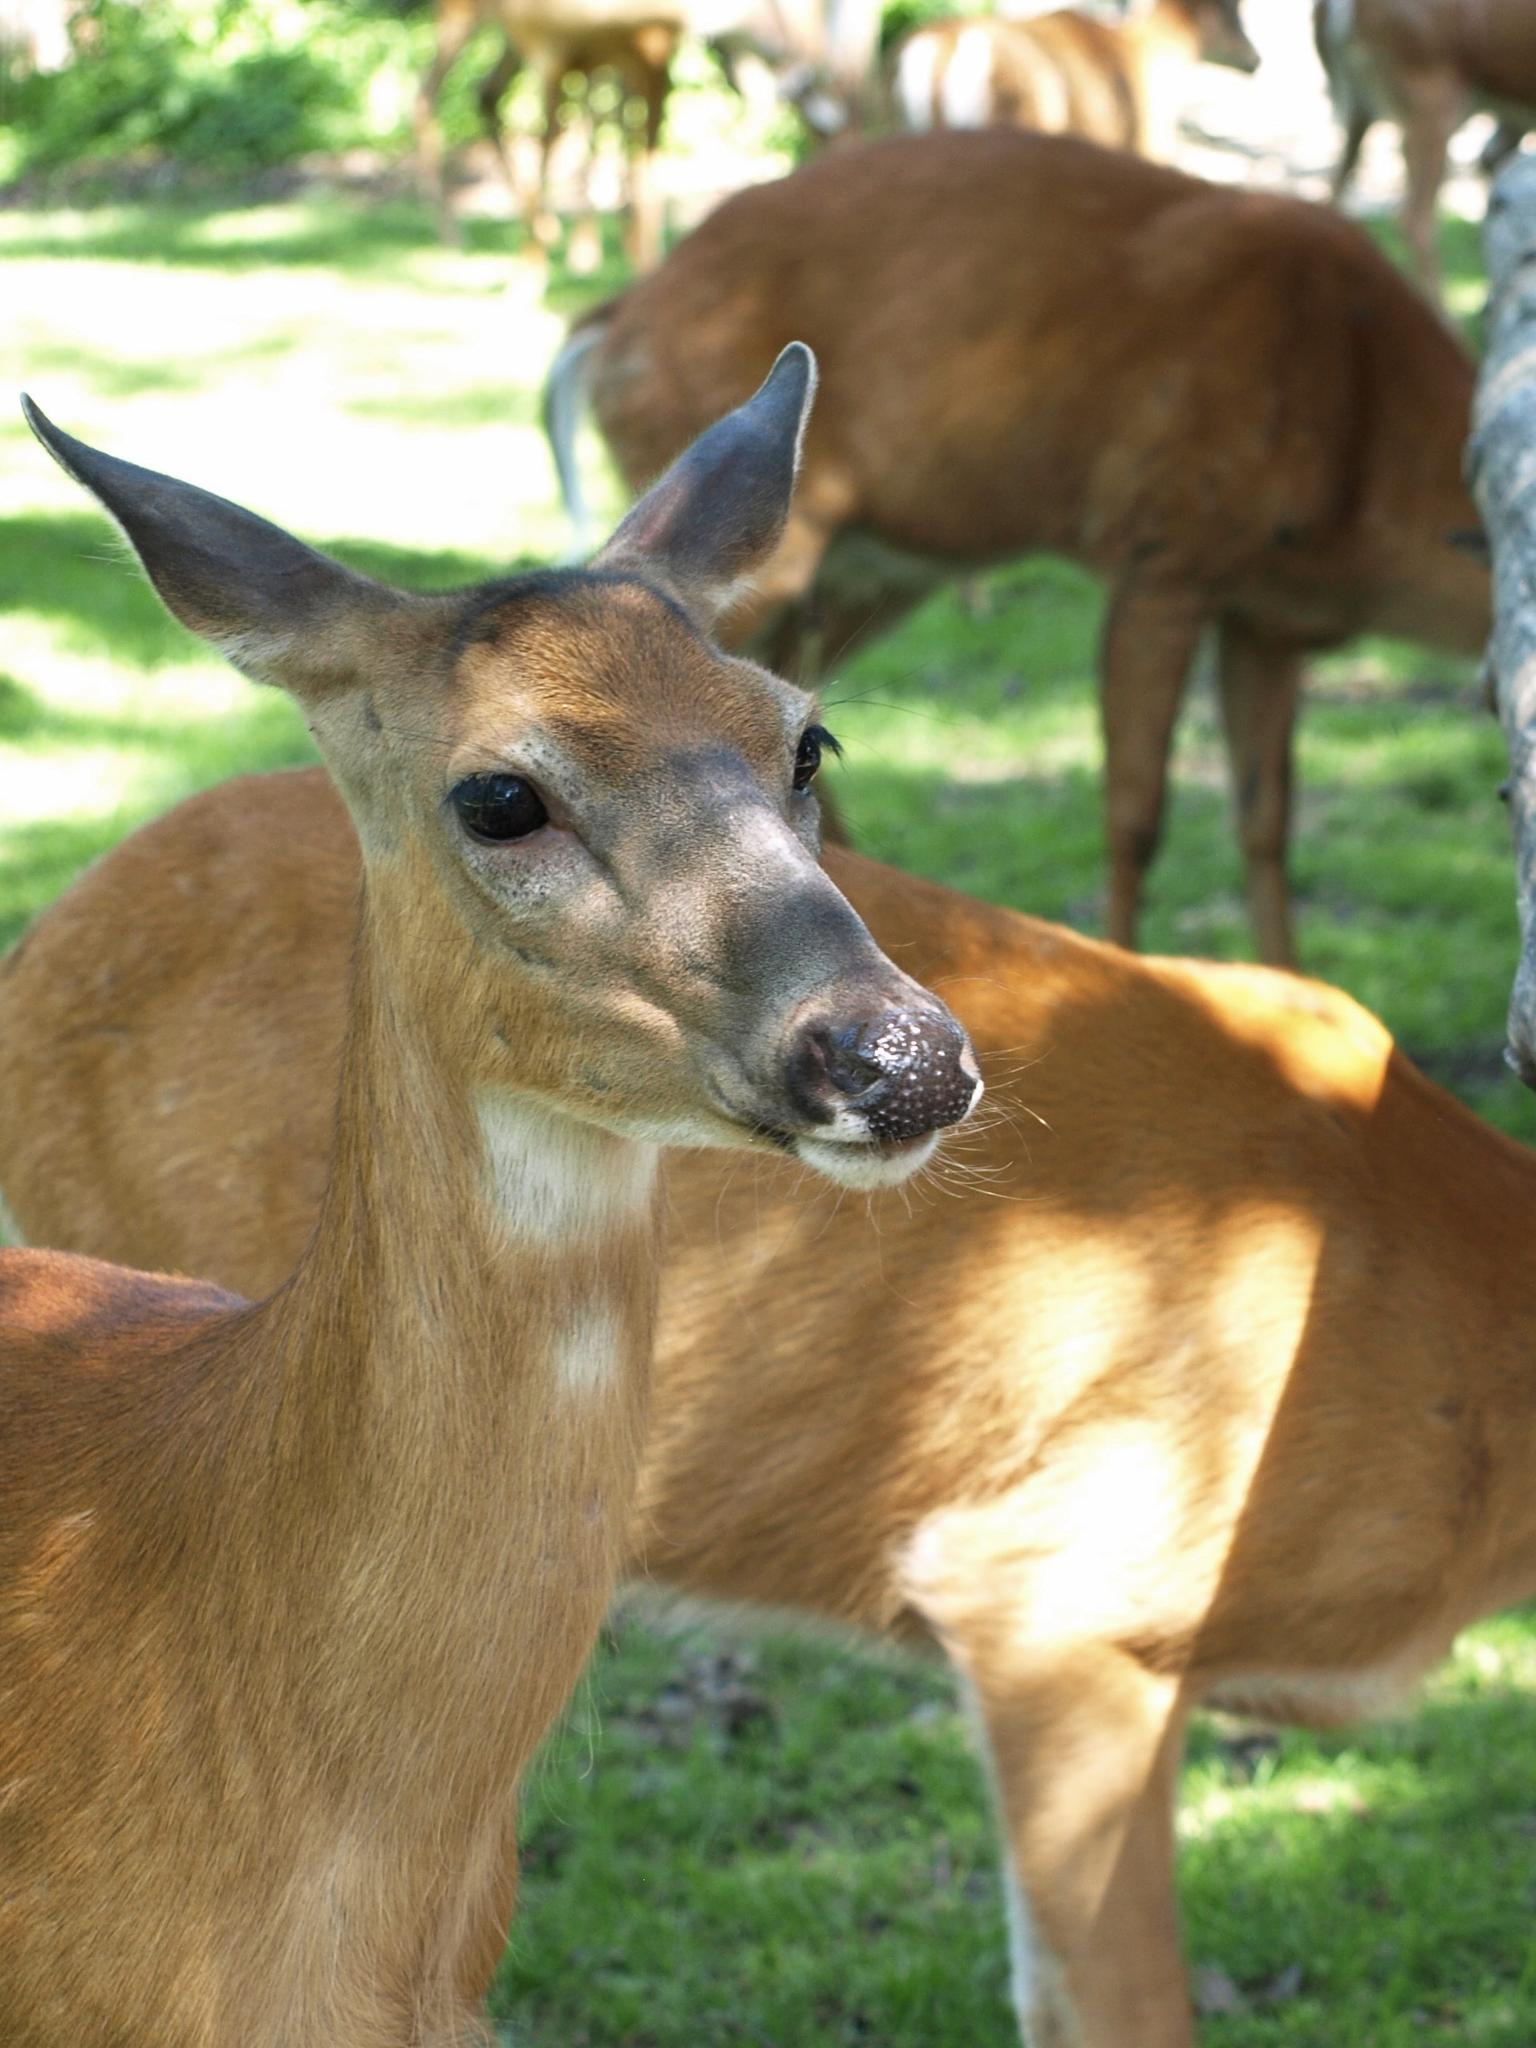 Deer grazing by photofly/Holly